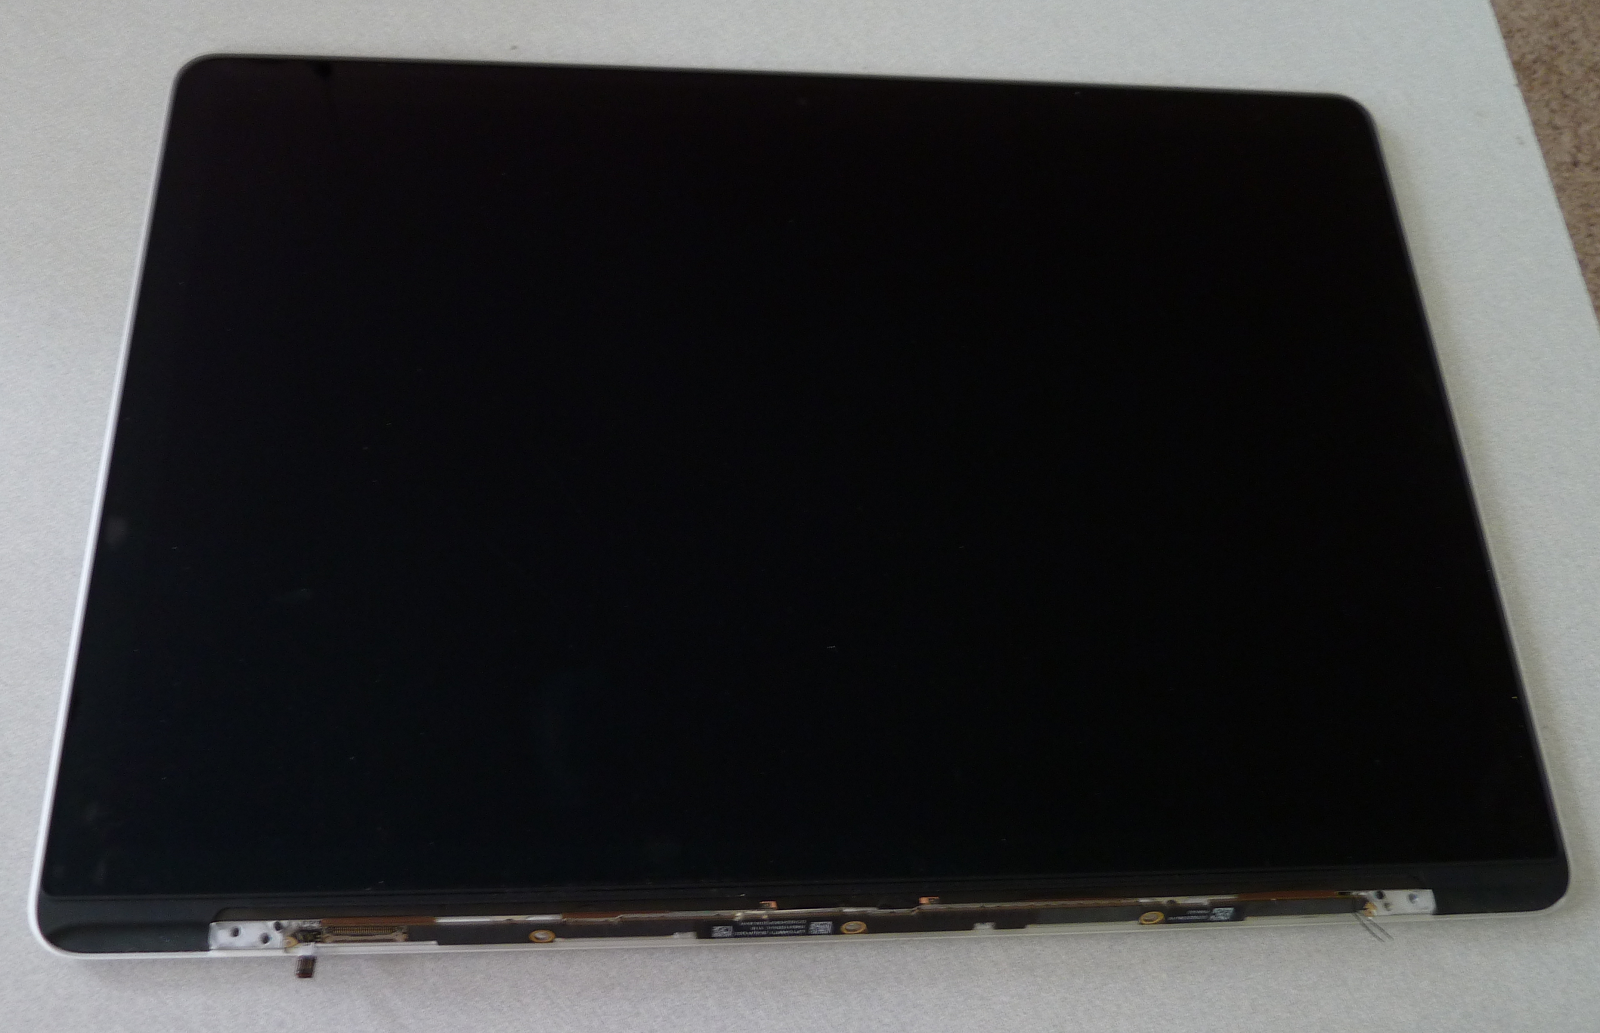 Hacking the Macbook Pro Retina LCD, Part 1: First Looks | Mike's Mods